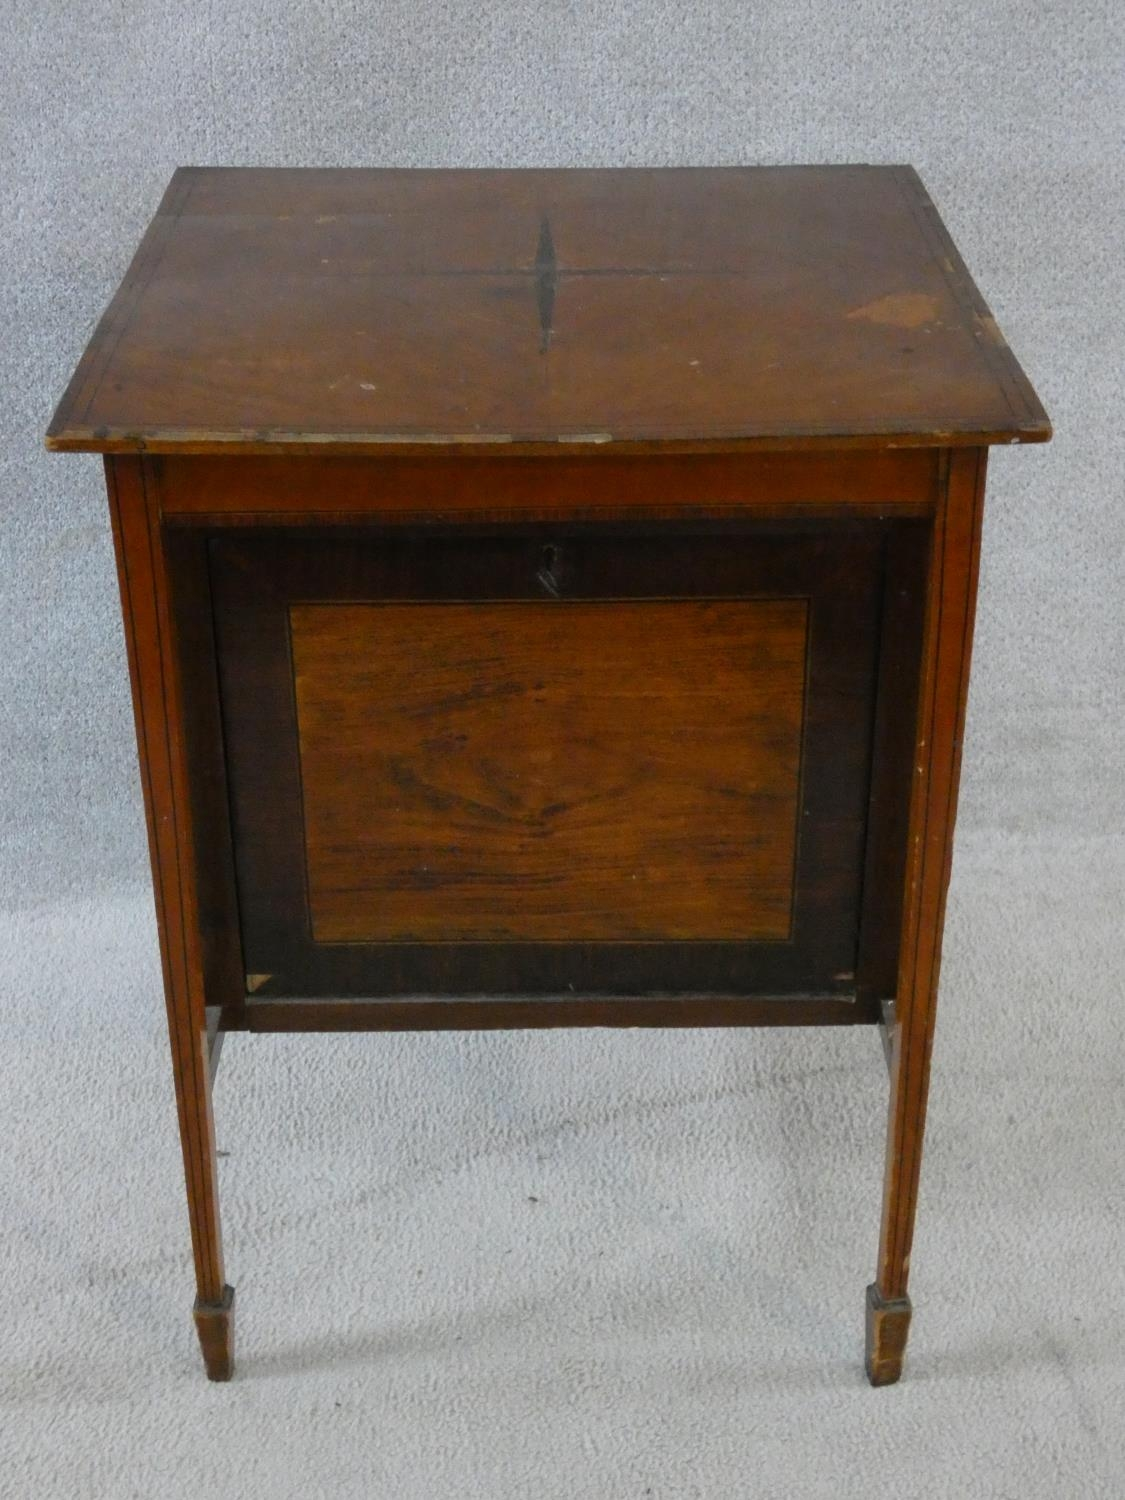 An Edwardian fitted mahogany record cabinet. H.70 W.52 D.52cm - Image 2 of 18